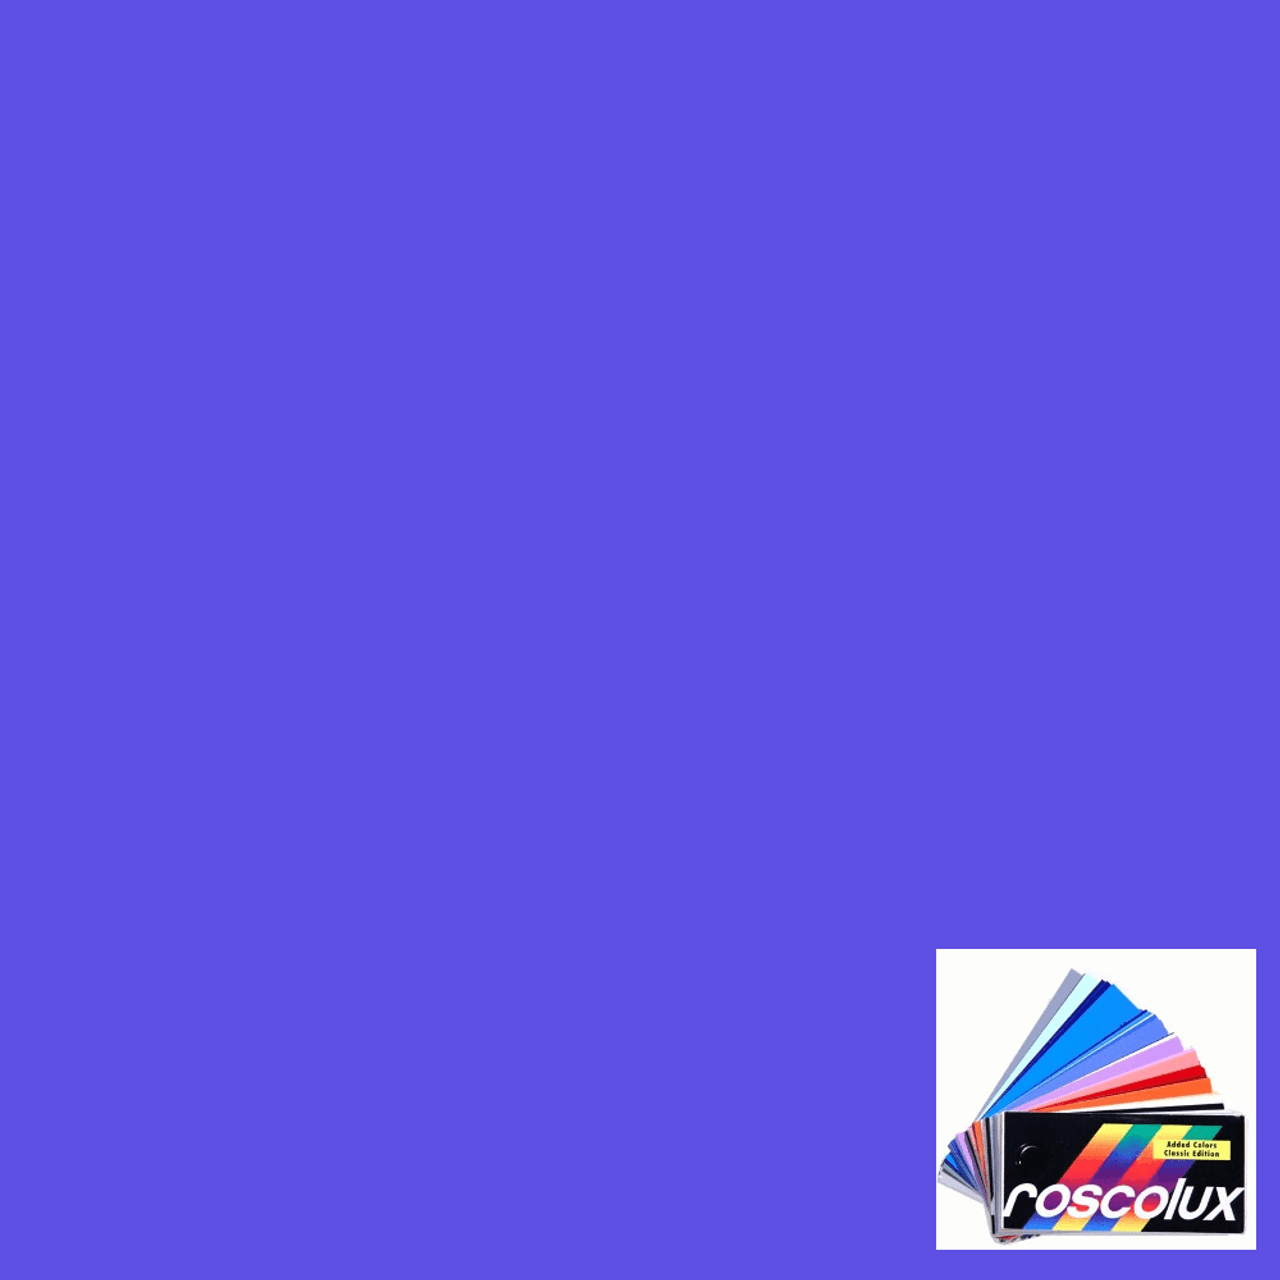 #4260 Rosco Gels Roscolux CalColor 60 Blue, 20x24""